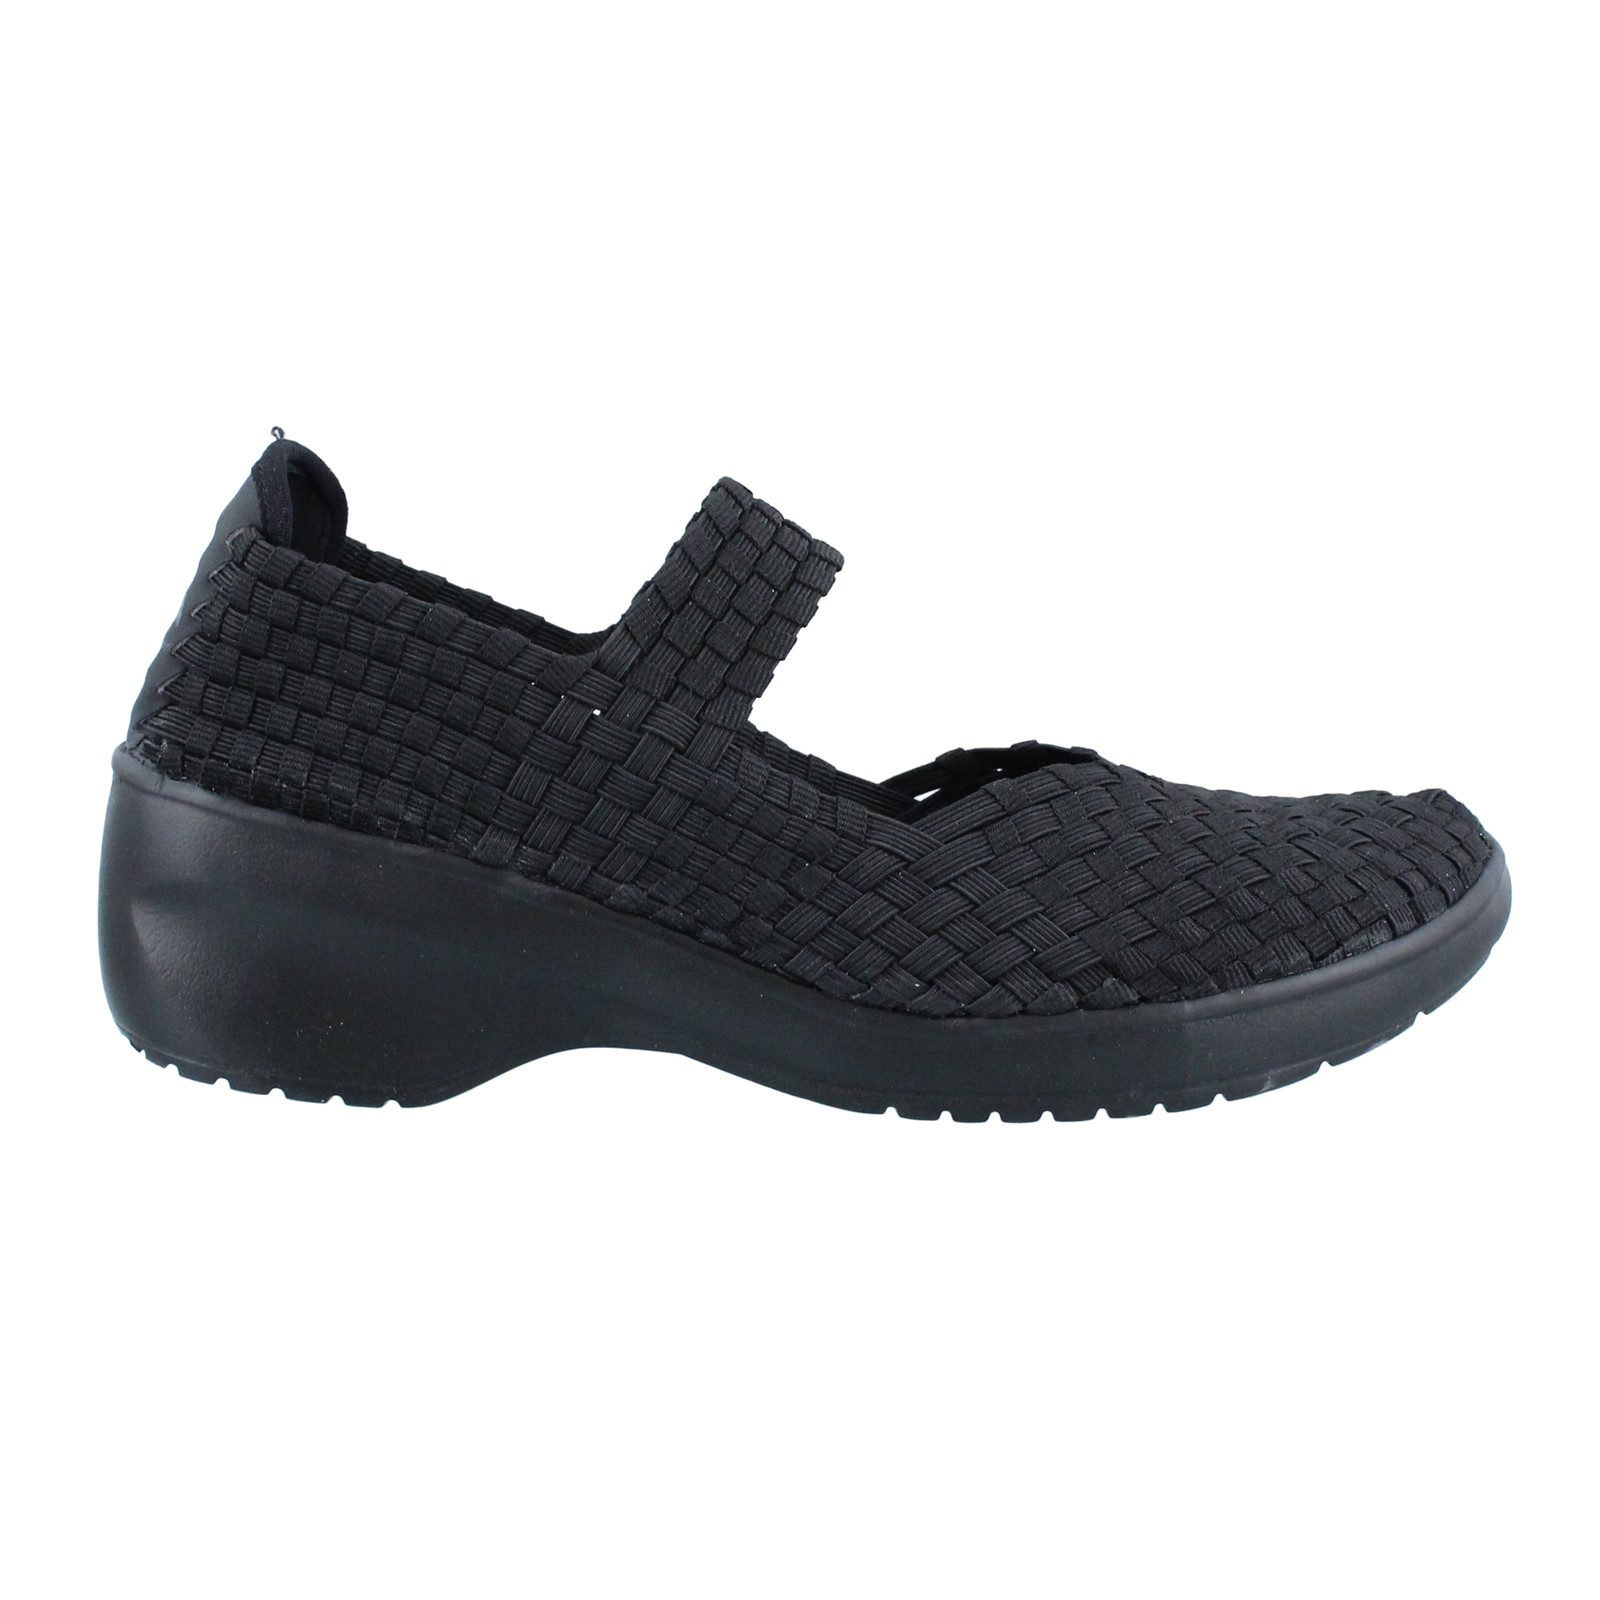 Women's Cobb Hill, Mantra Slip on Shoes